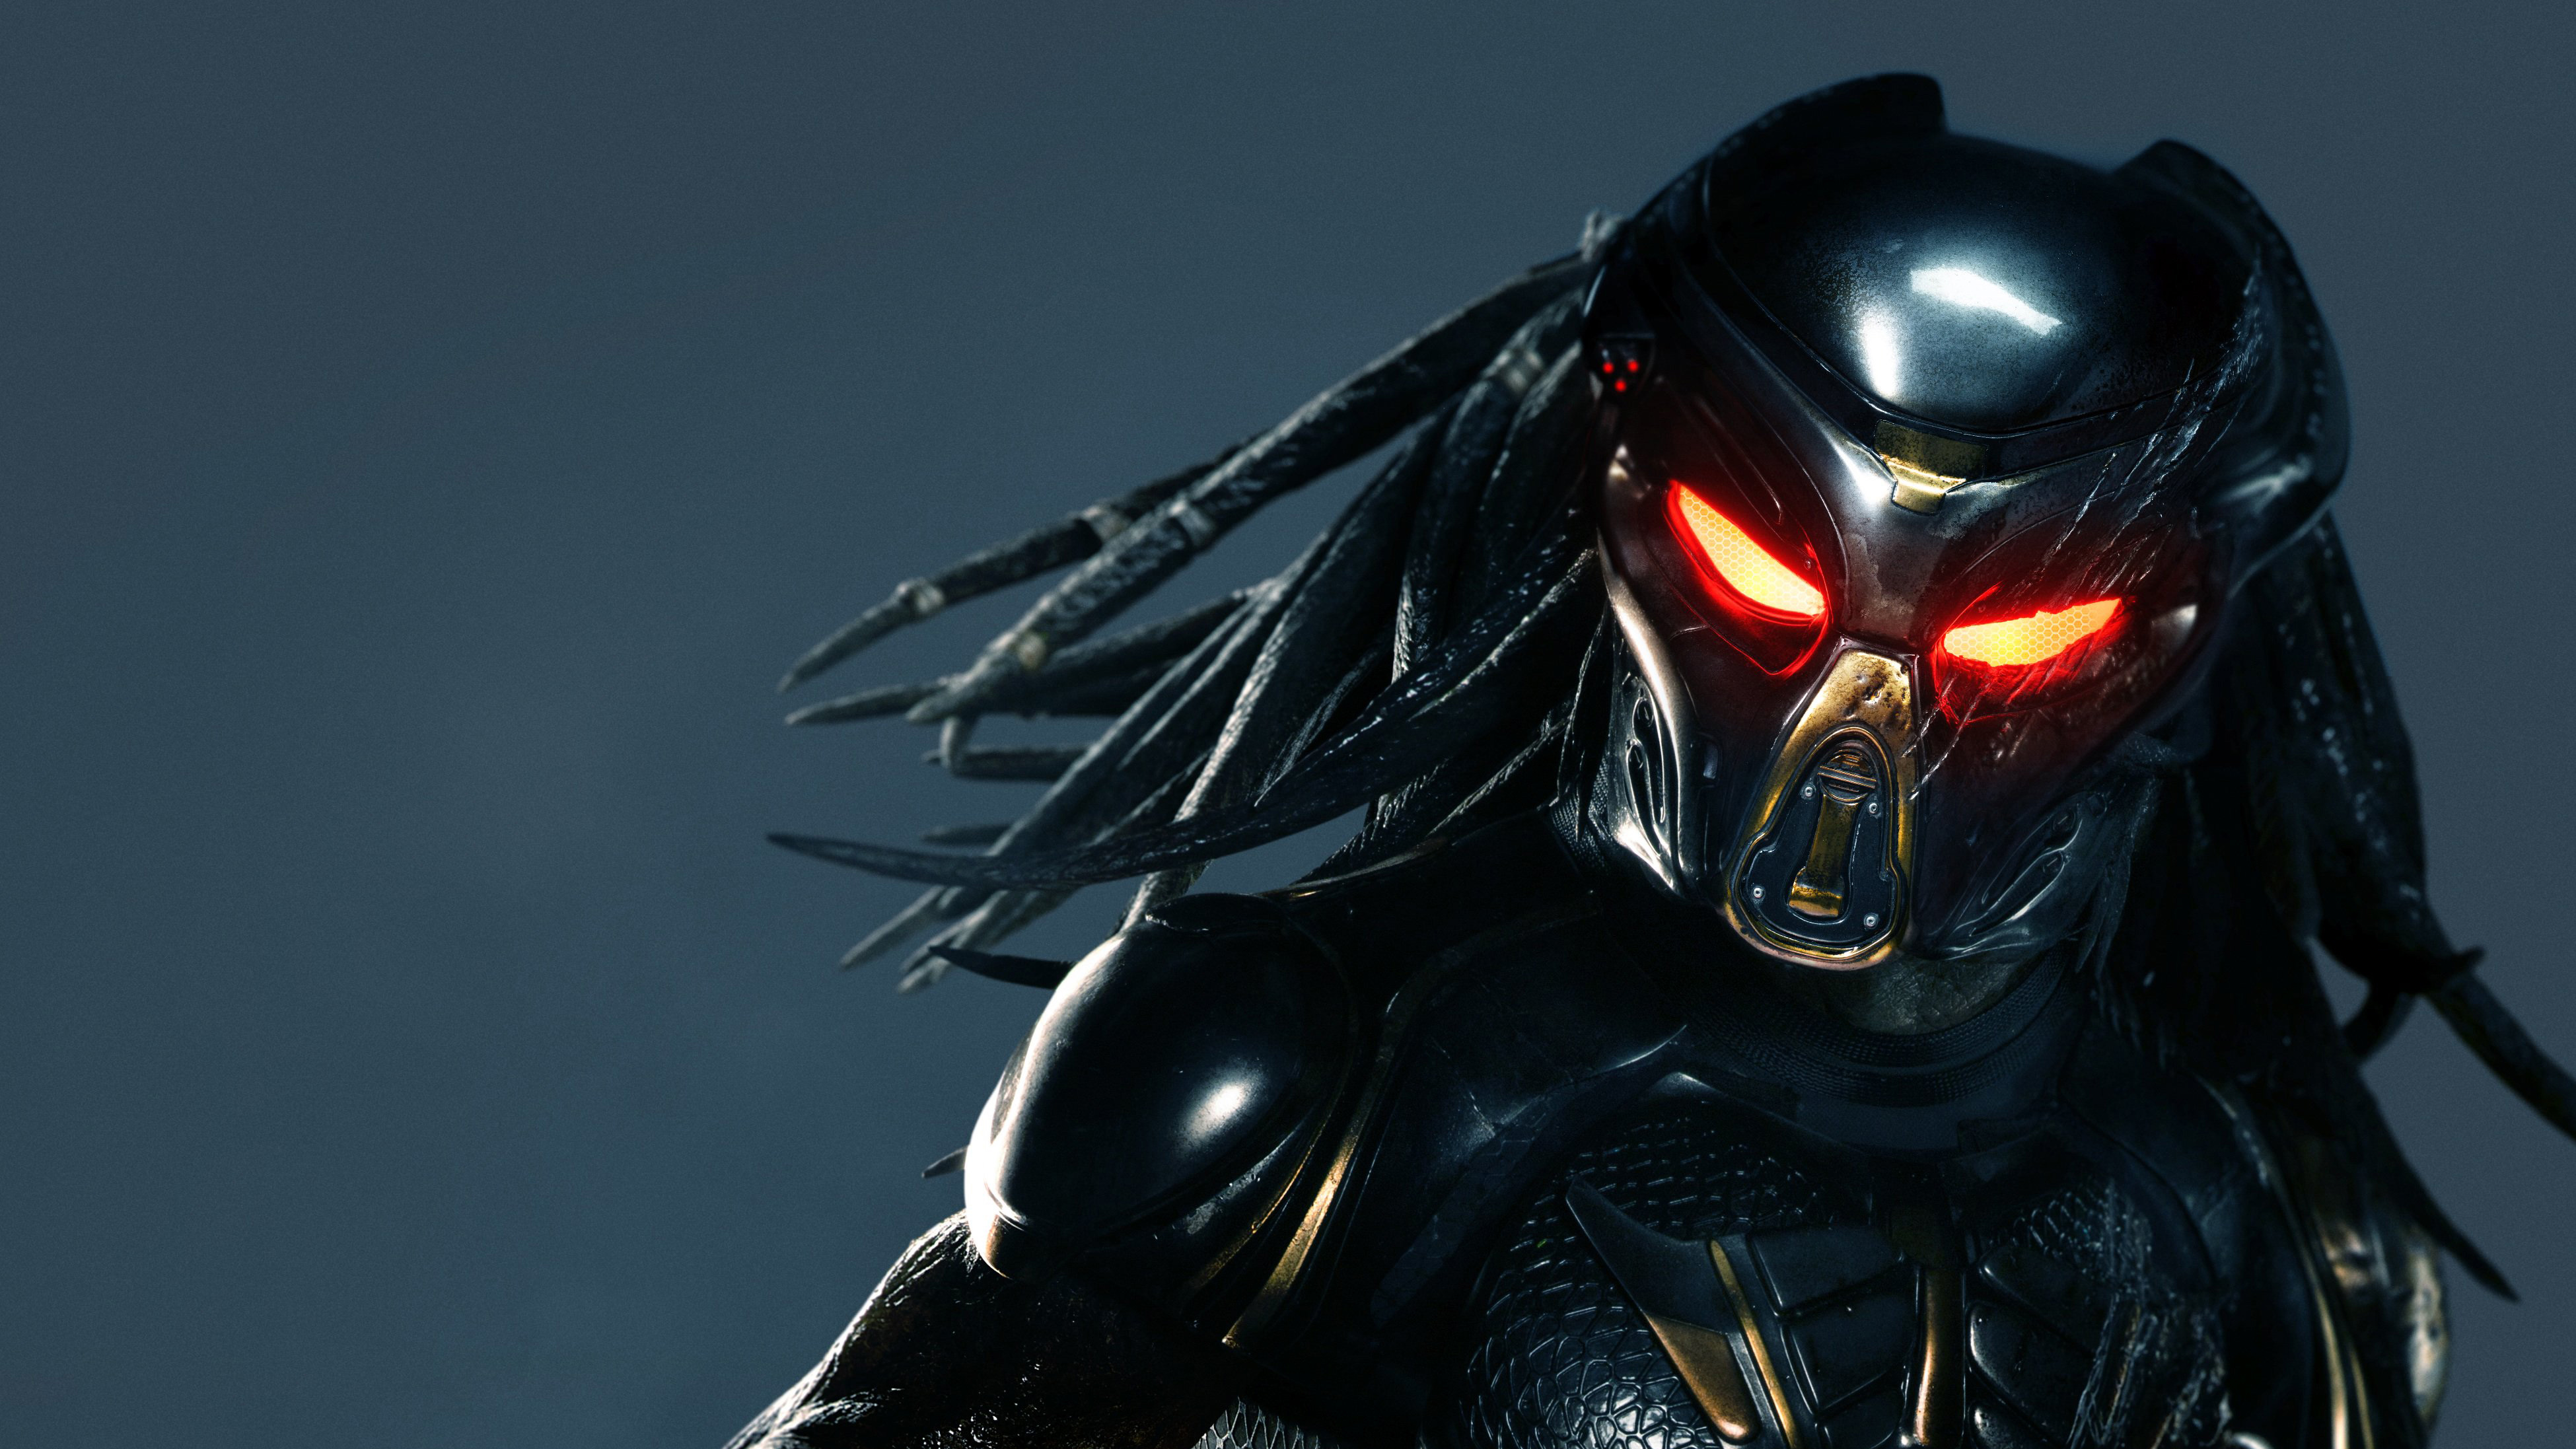 The predator movie 2018 poster hd movies 4k wallpapers - Movie poster wallpaper ...